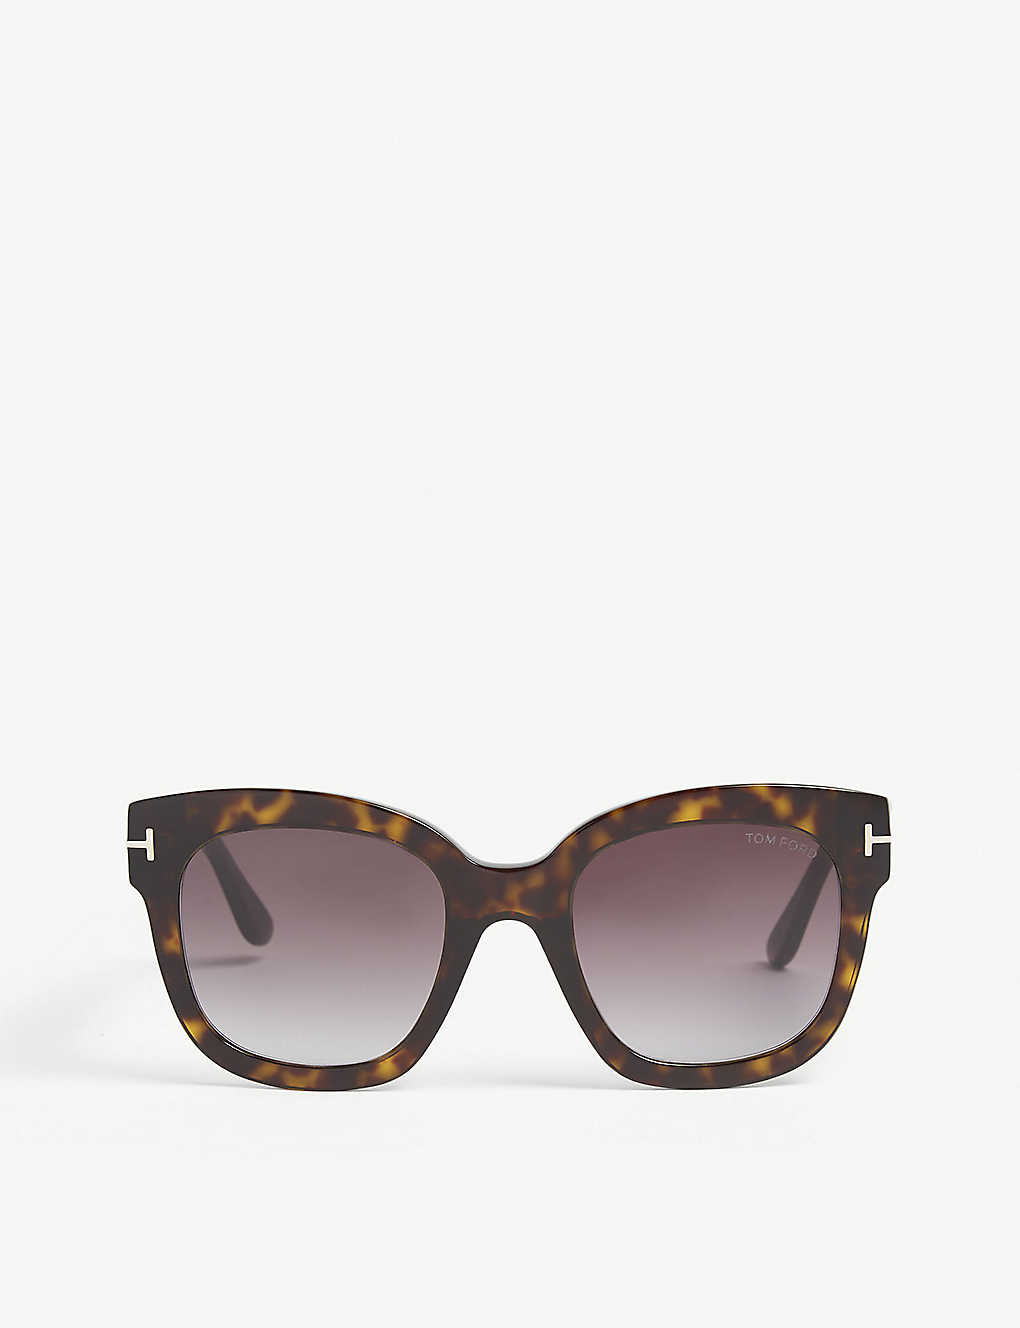 ed845e8b0d1 TOM FORD - Beatrix square-frame sunglasses | Selfridges.com